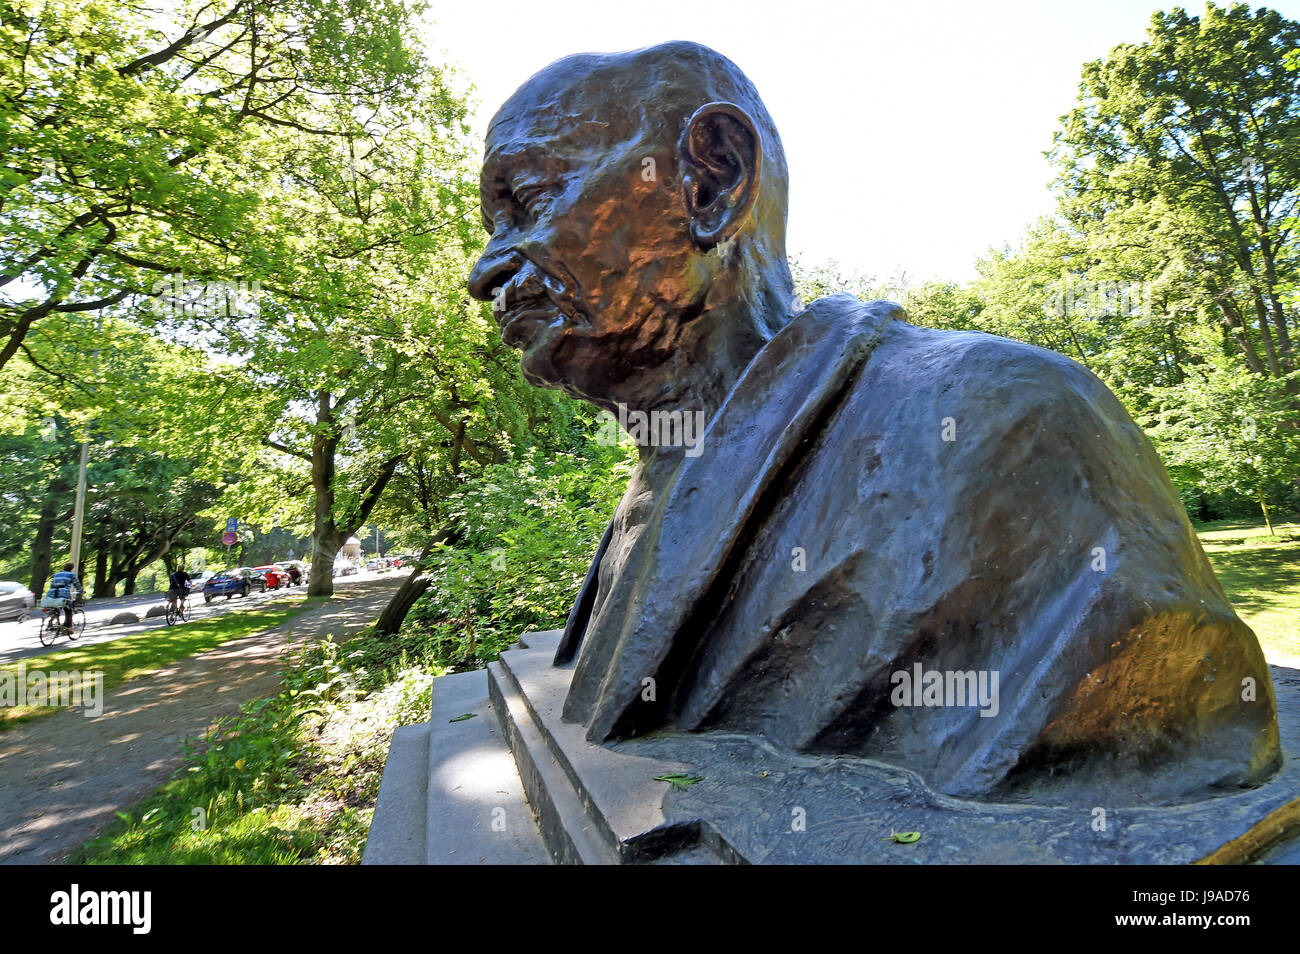 Hanover, Germany. 1st June, 2017. A bust of Indian independence movement leader Mohandas Karamchand Gandhi in Hanover, - Stock Image